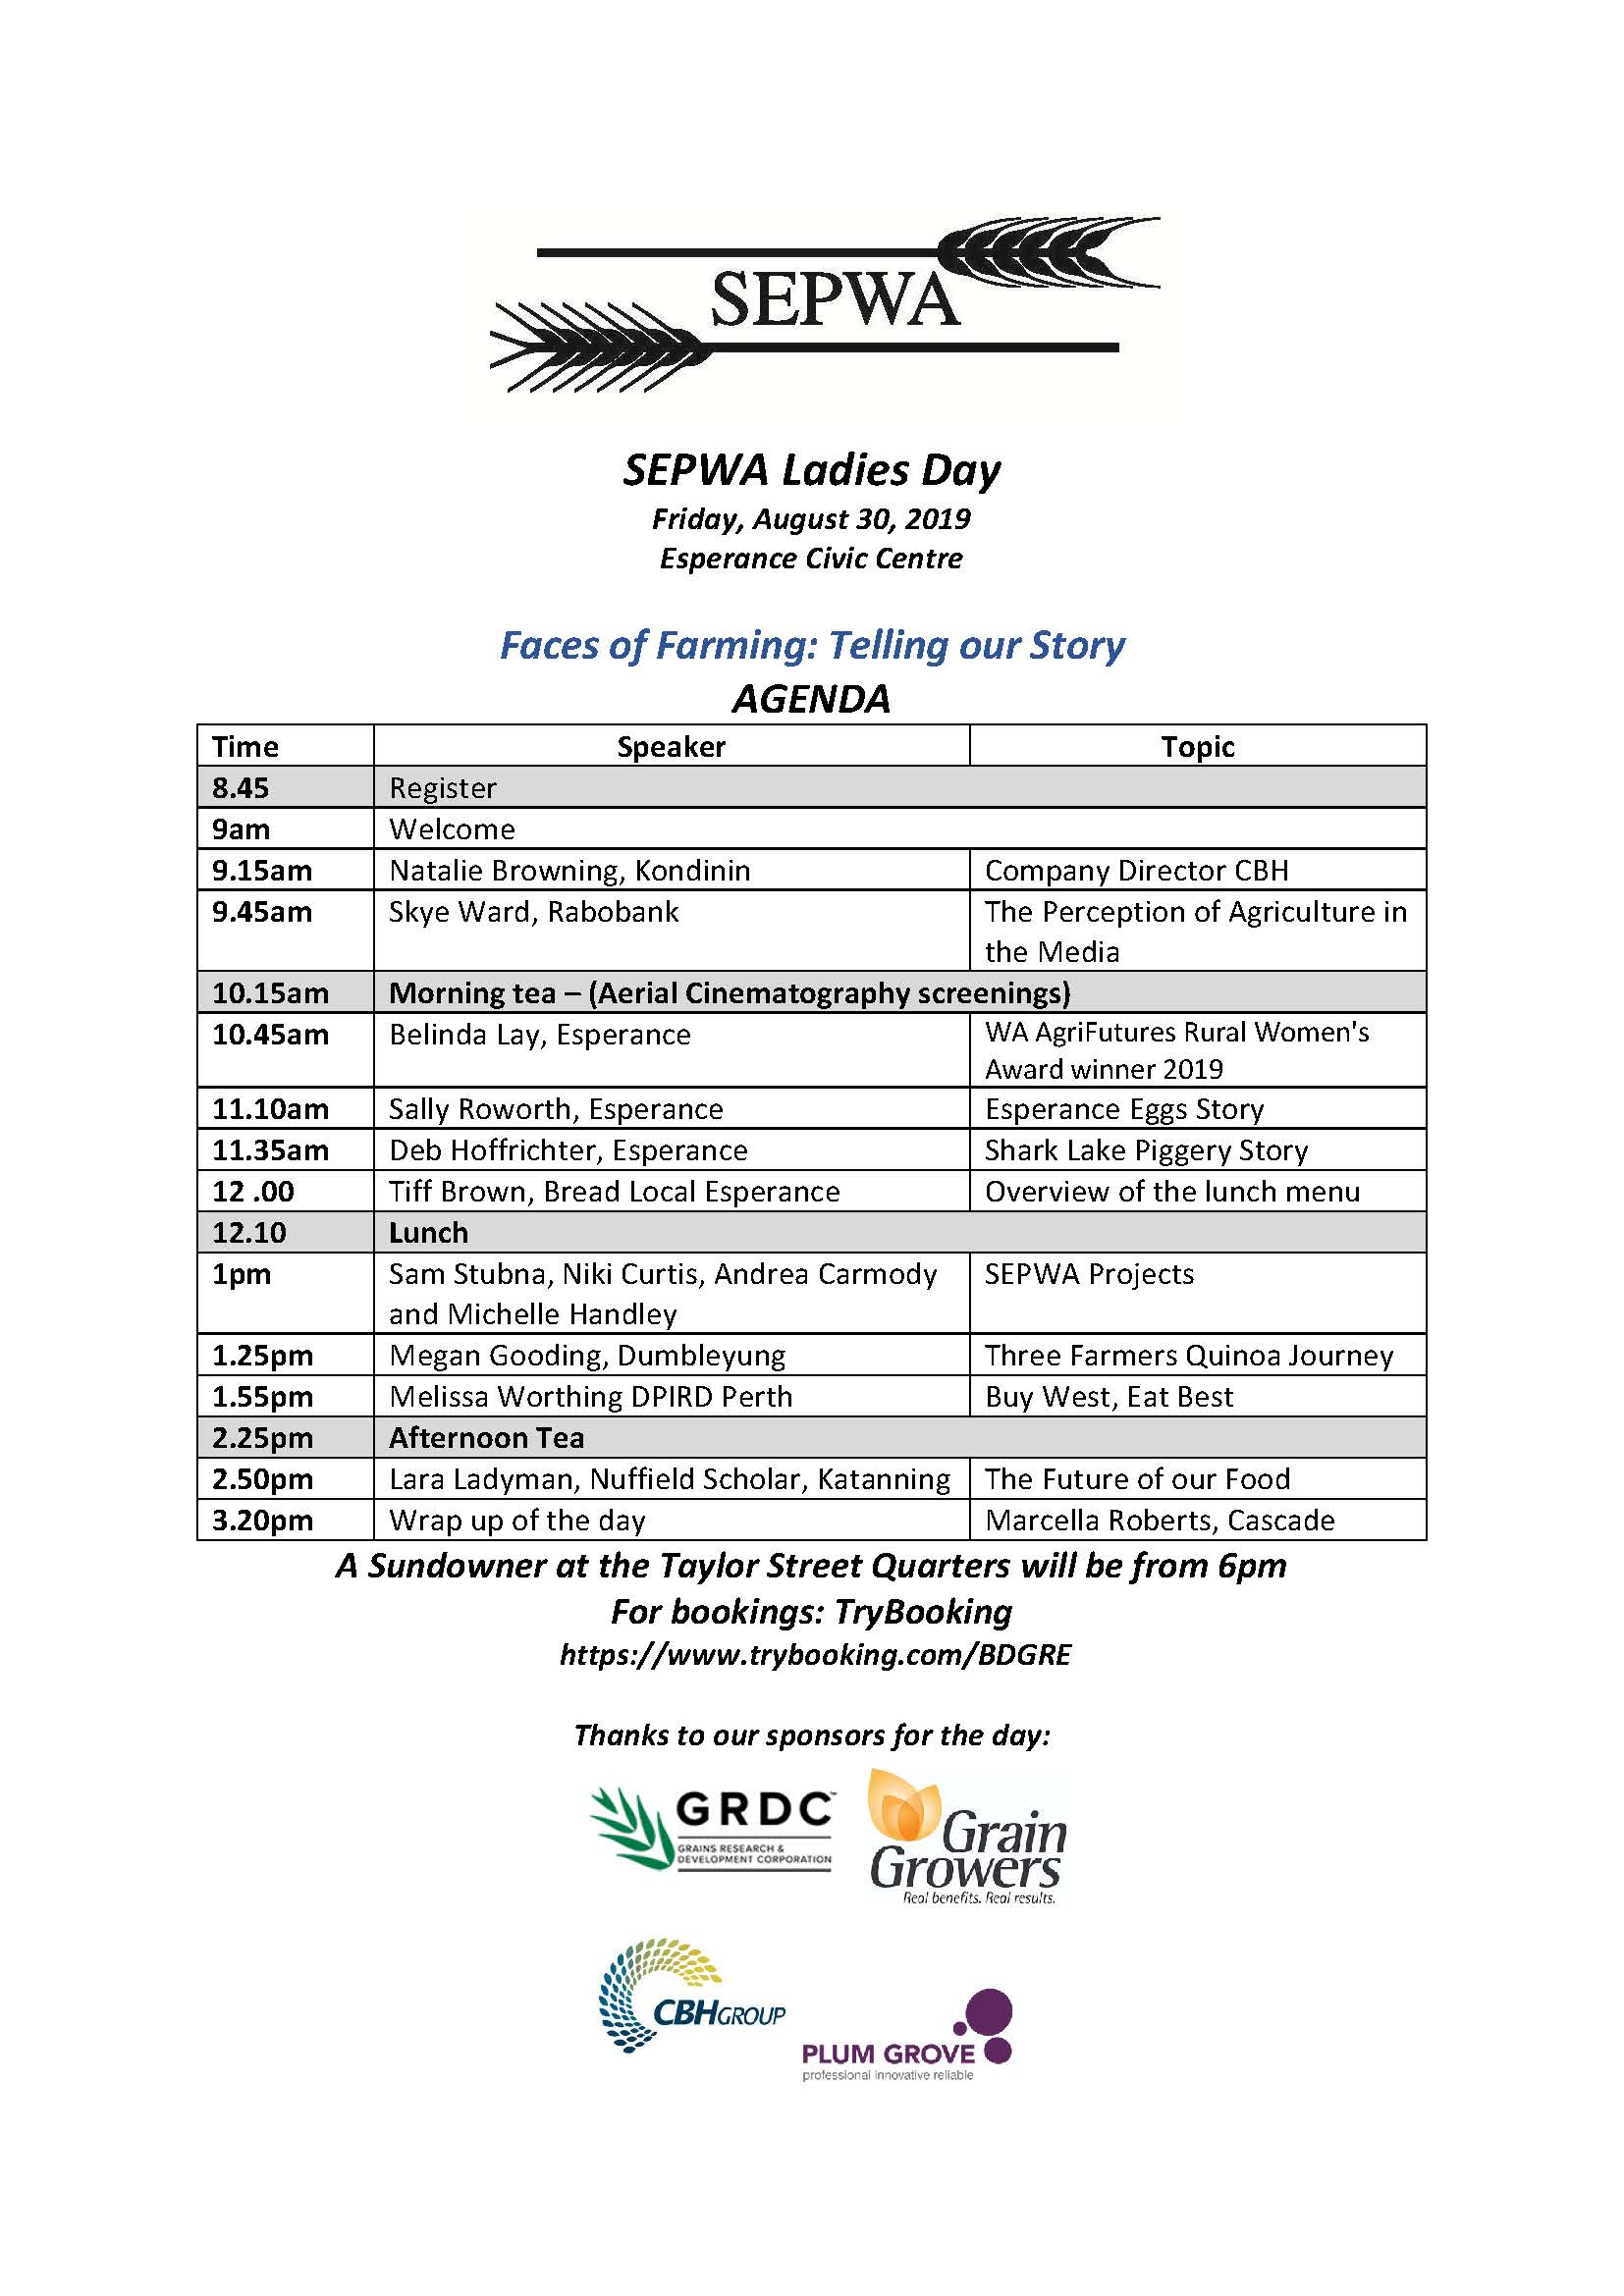 SEPWA Ladies Day Agenda 2019